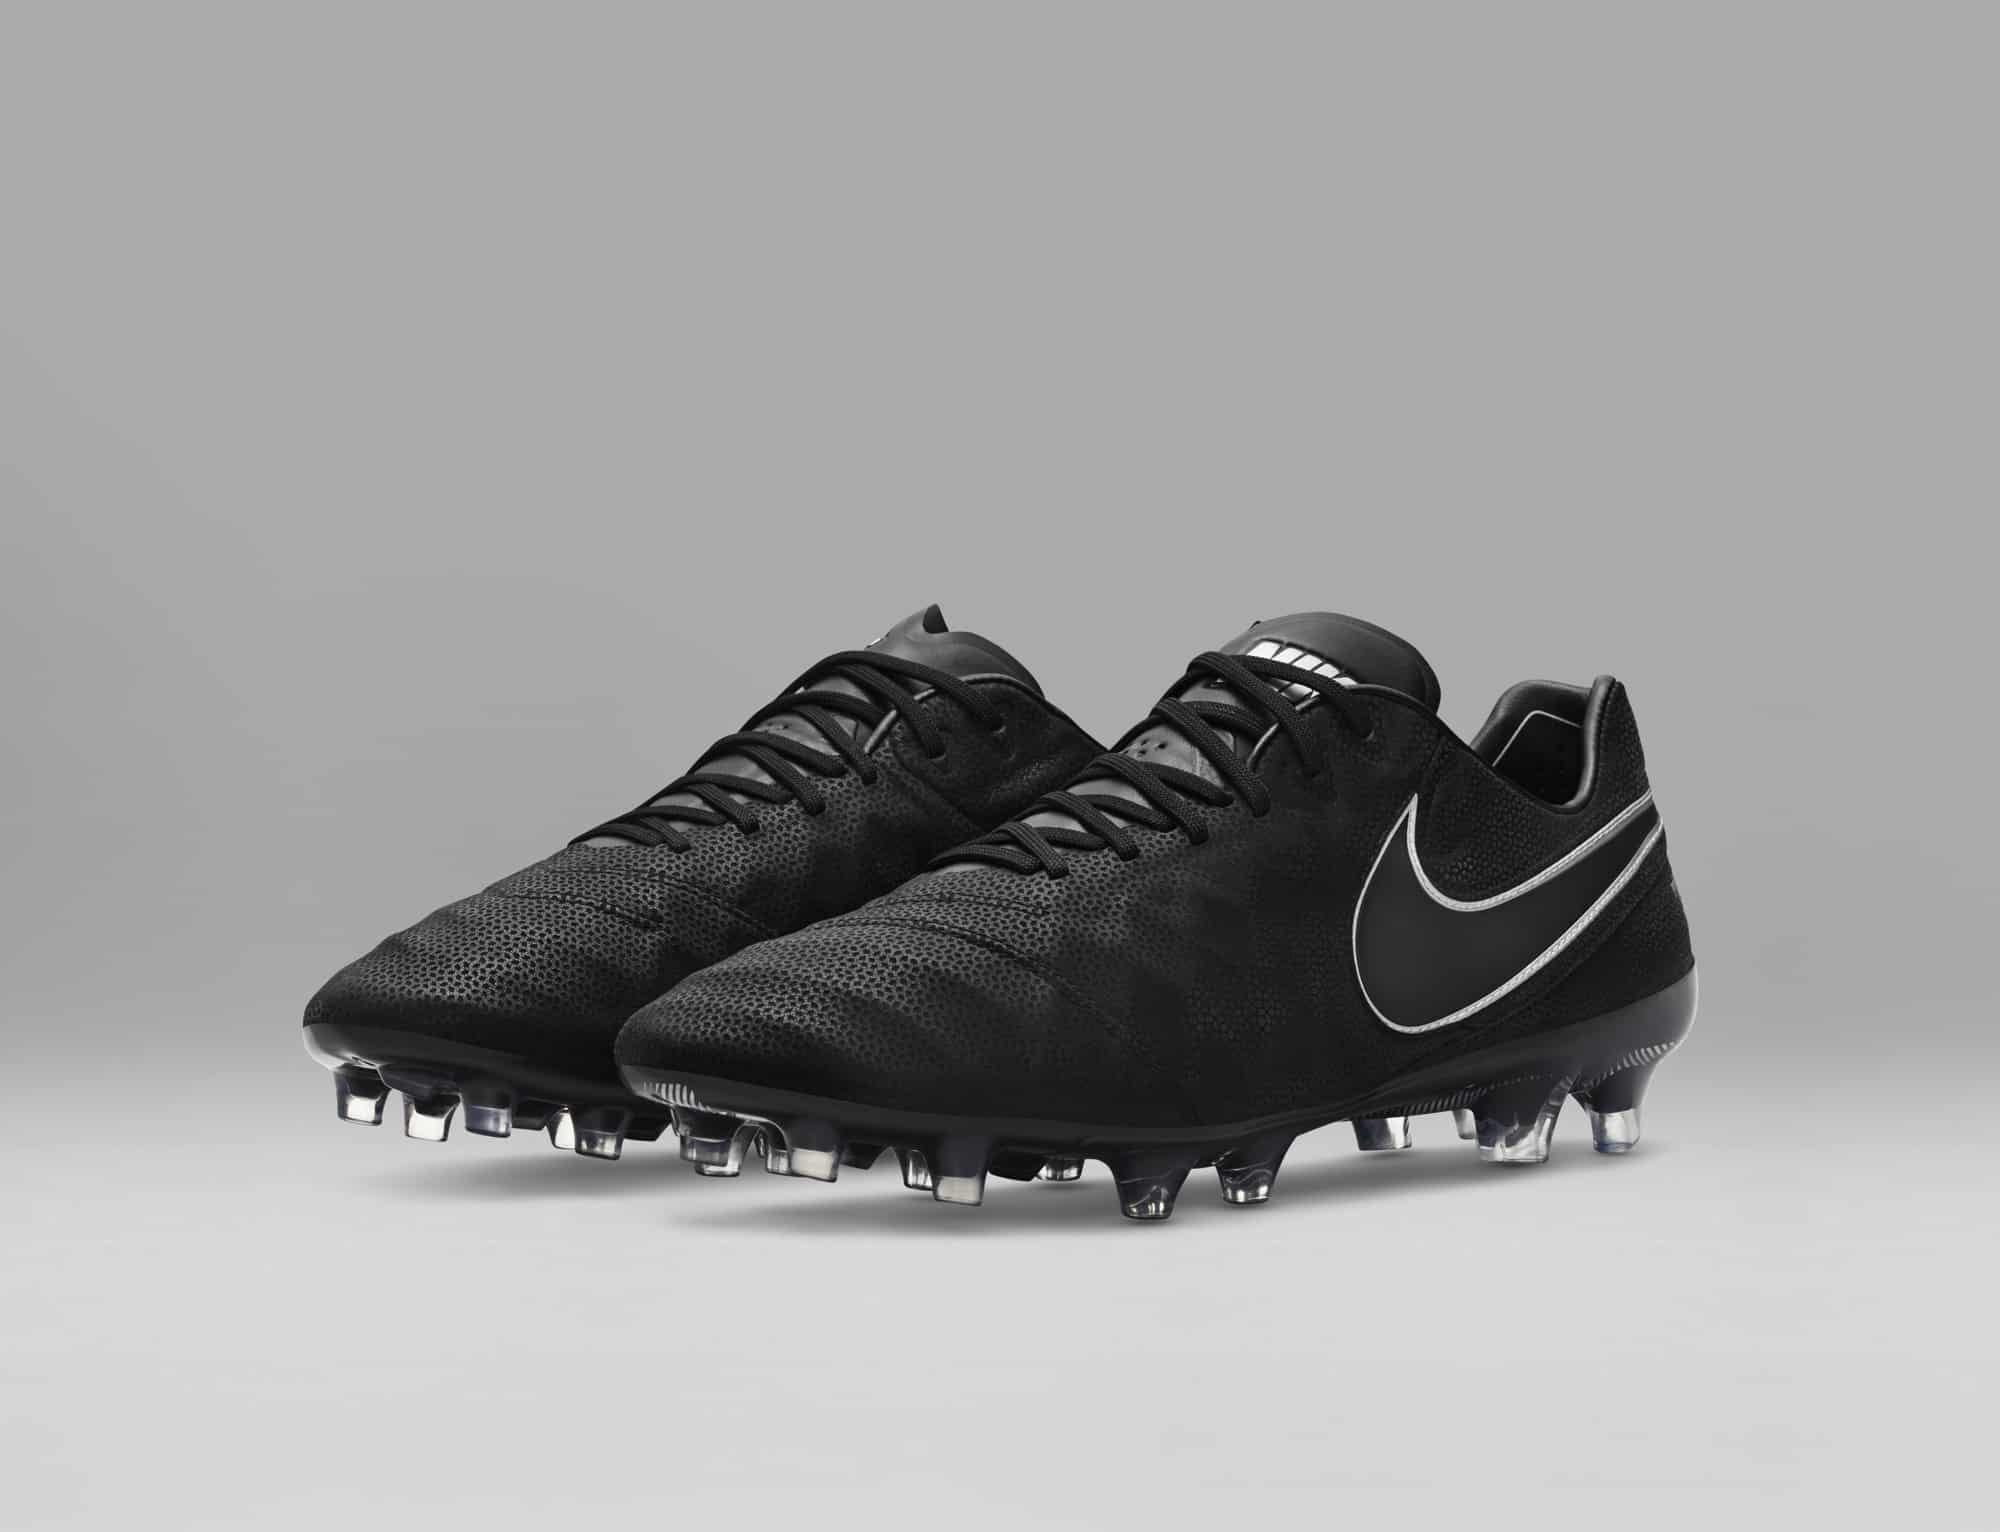 chaussures-football-nike-tiempo-legend-6-tech-craft-img1